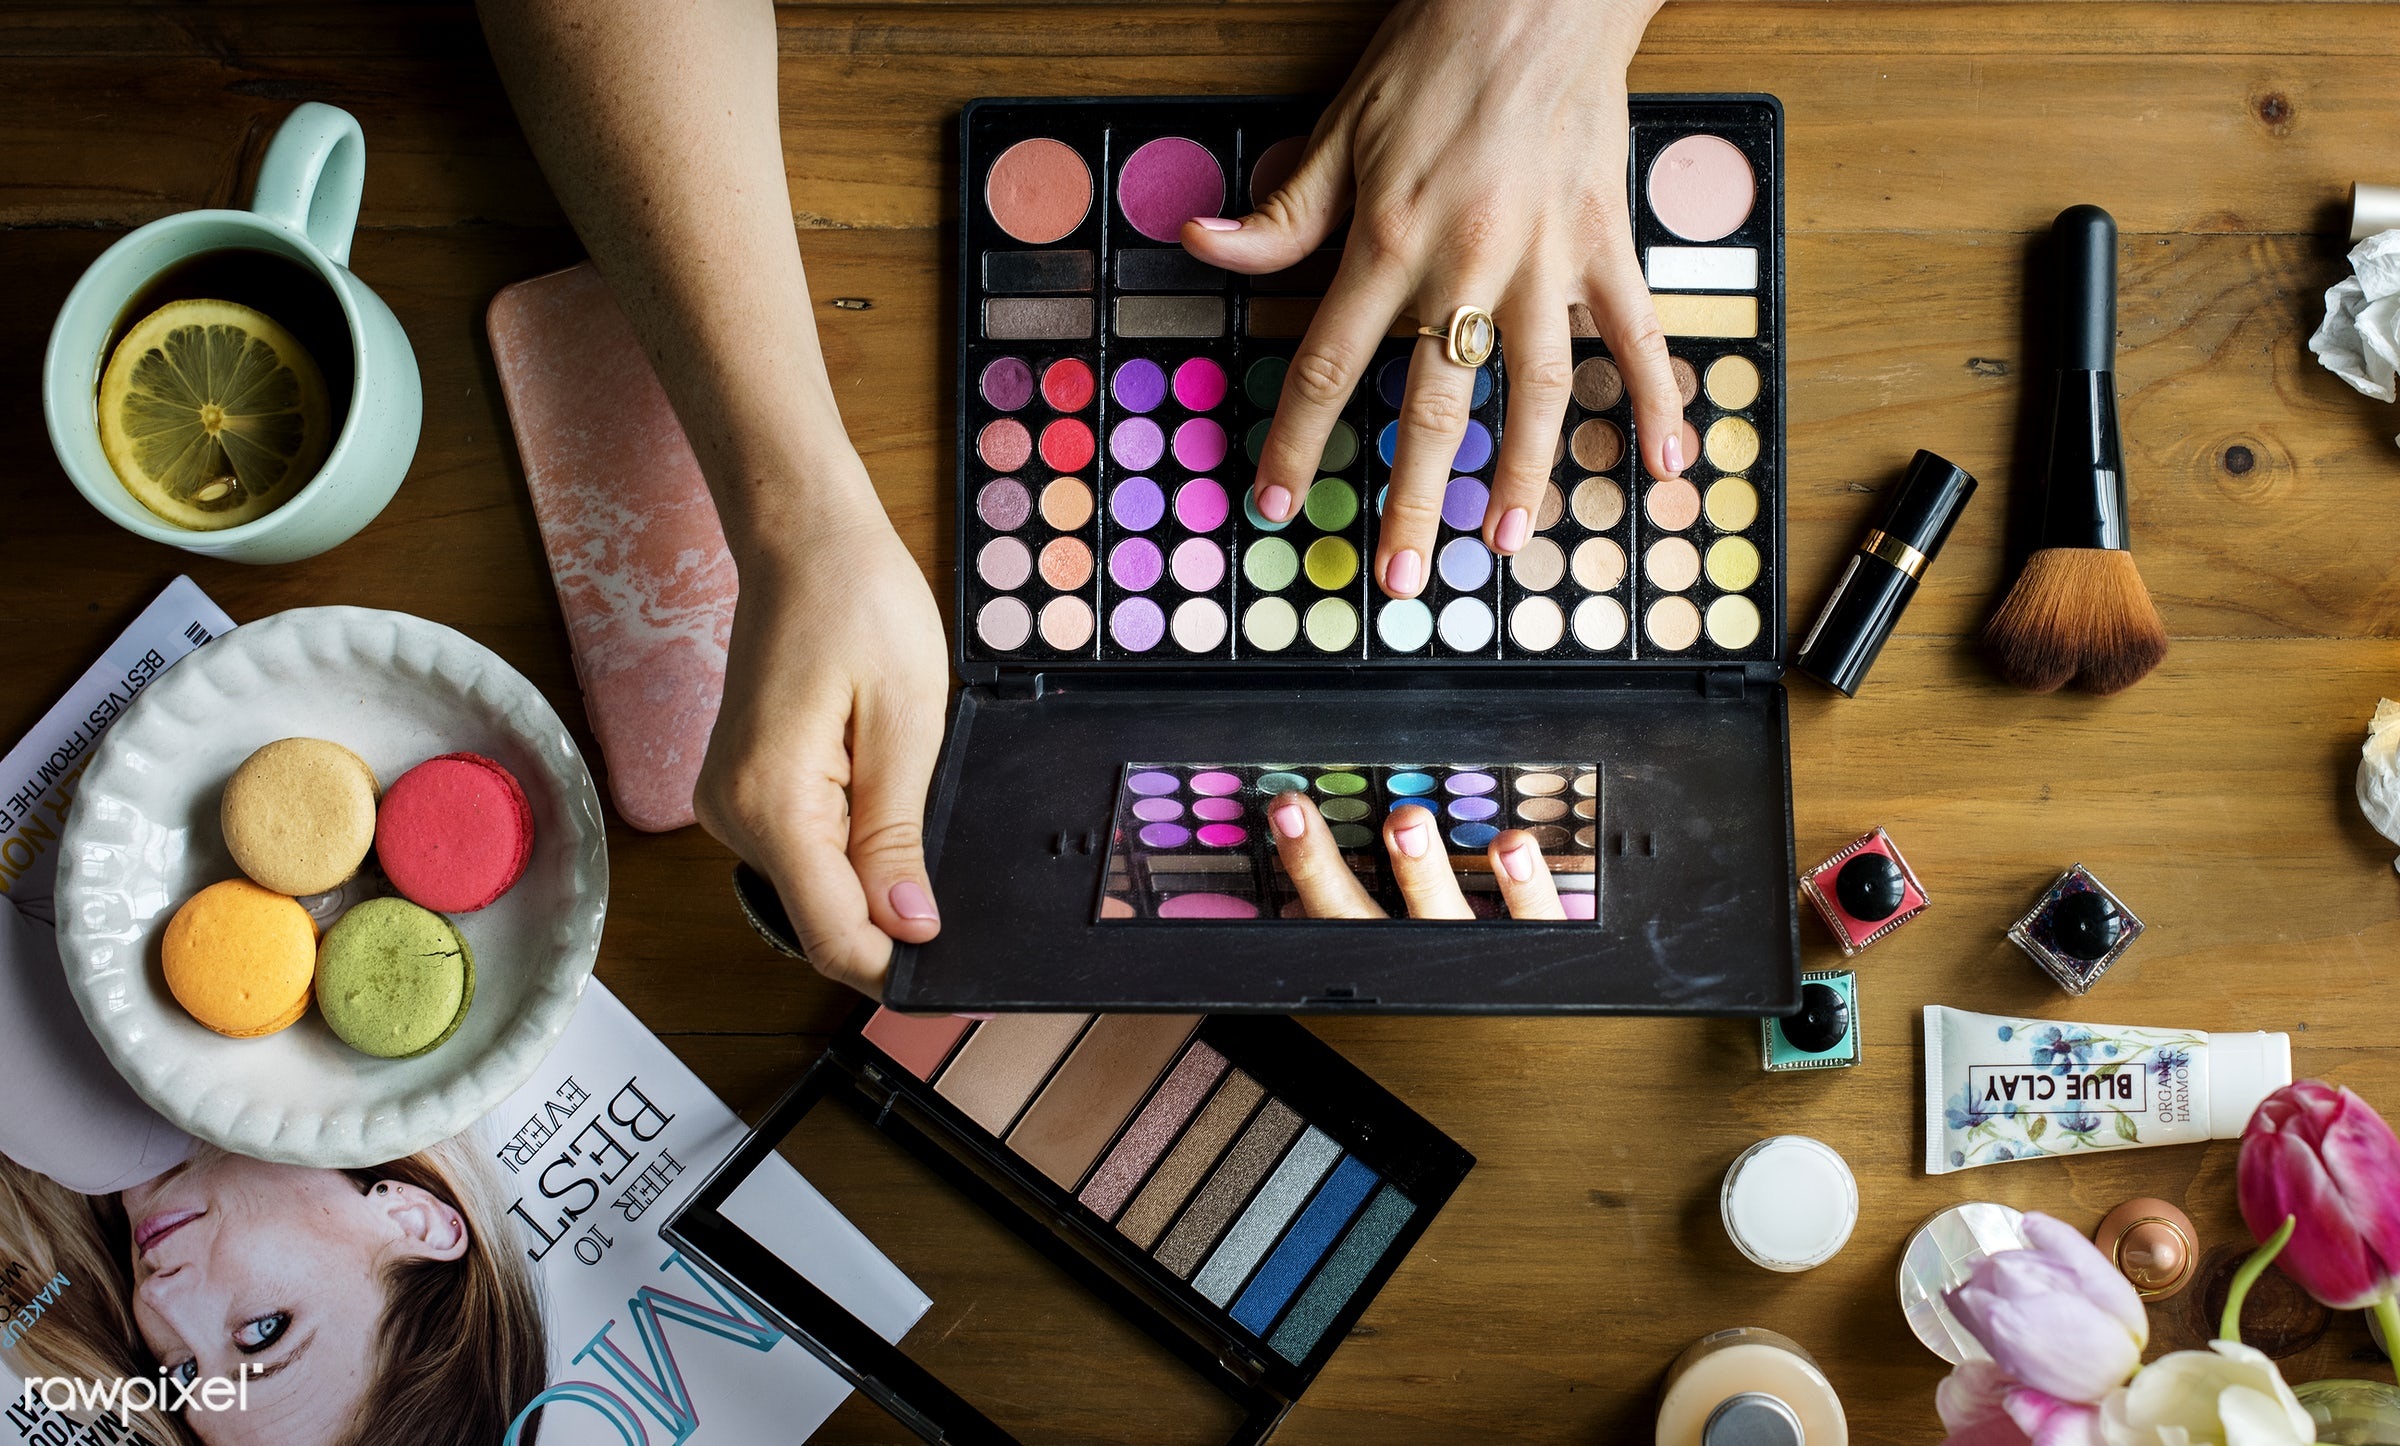 Ariel view of make up products - cosmetic, makeup, aerial view, attach, attached, beauty, blush, brushes, care, coffee,...